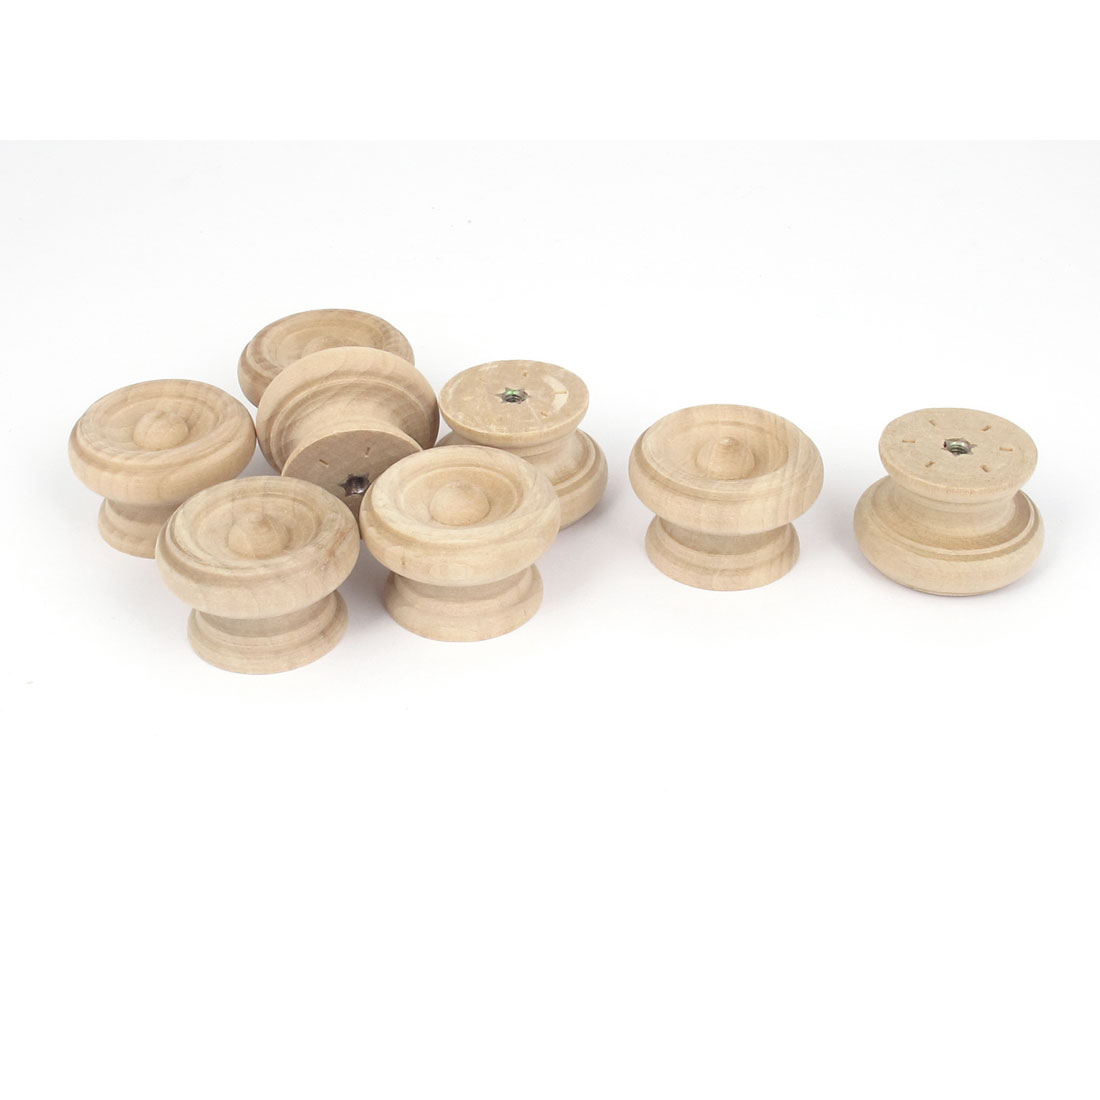 Wooden Round Shaped Cabinet Cupboard Wardrobe Drawer Pull Knob Handle 8Pcs